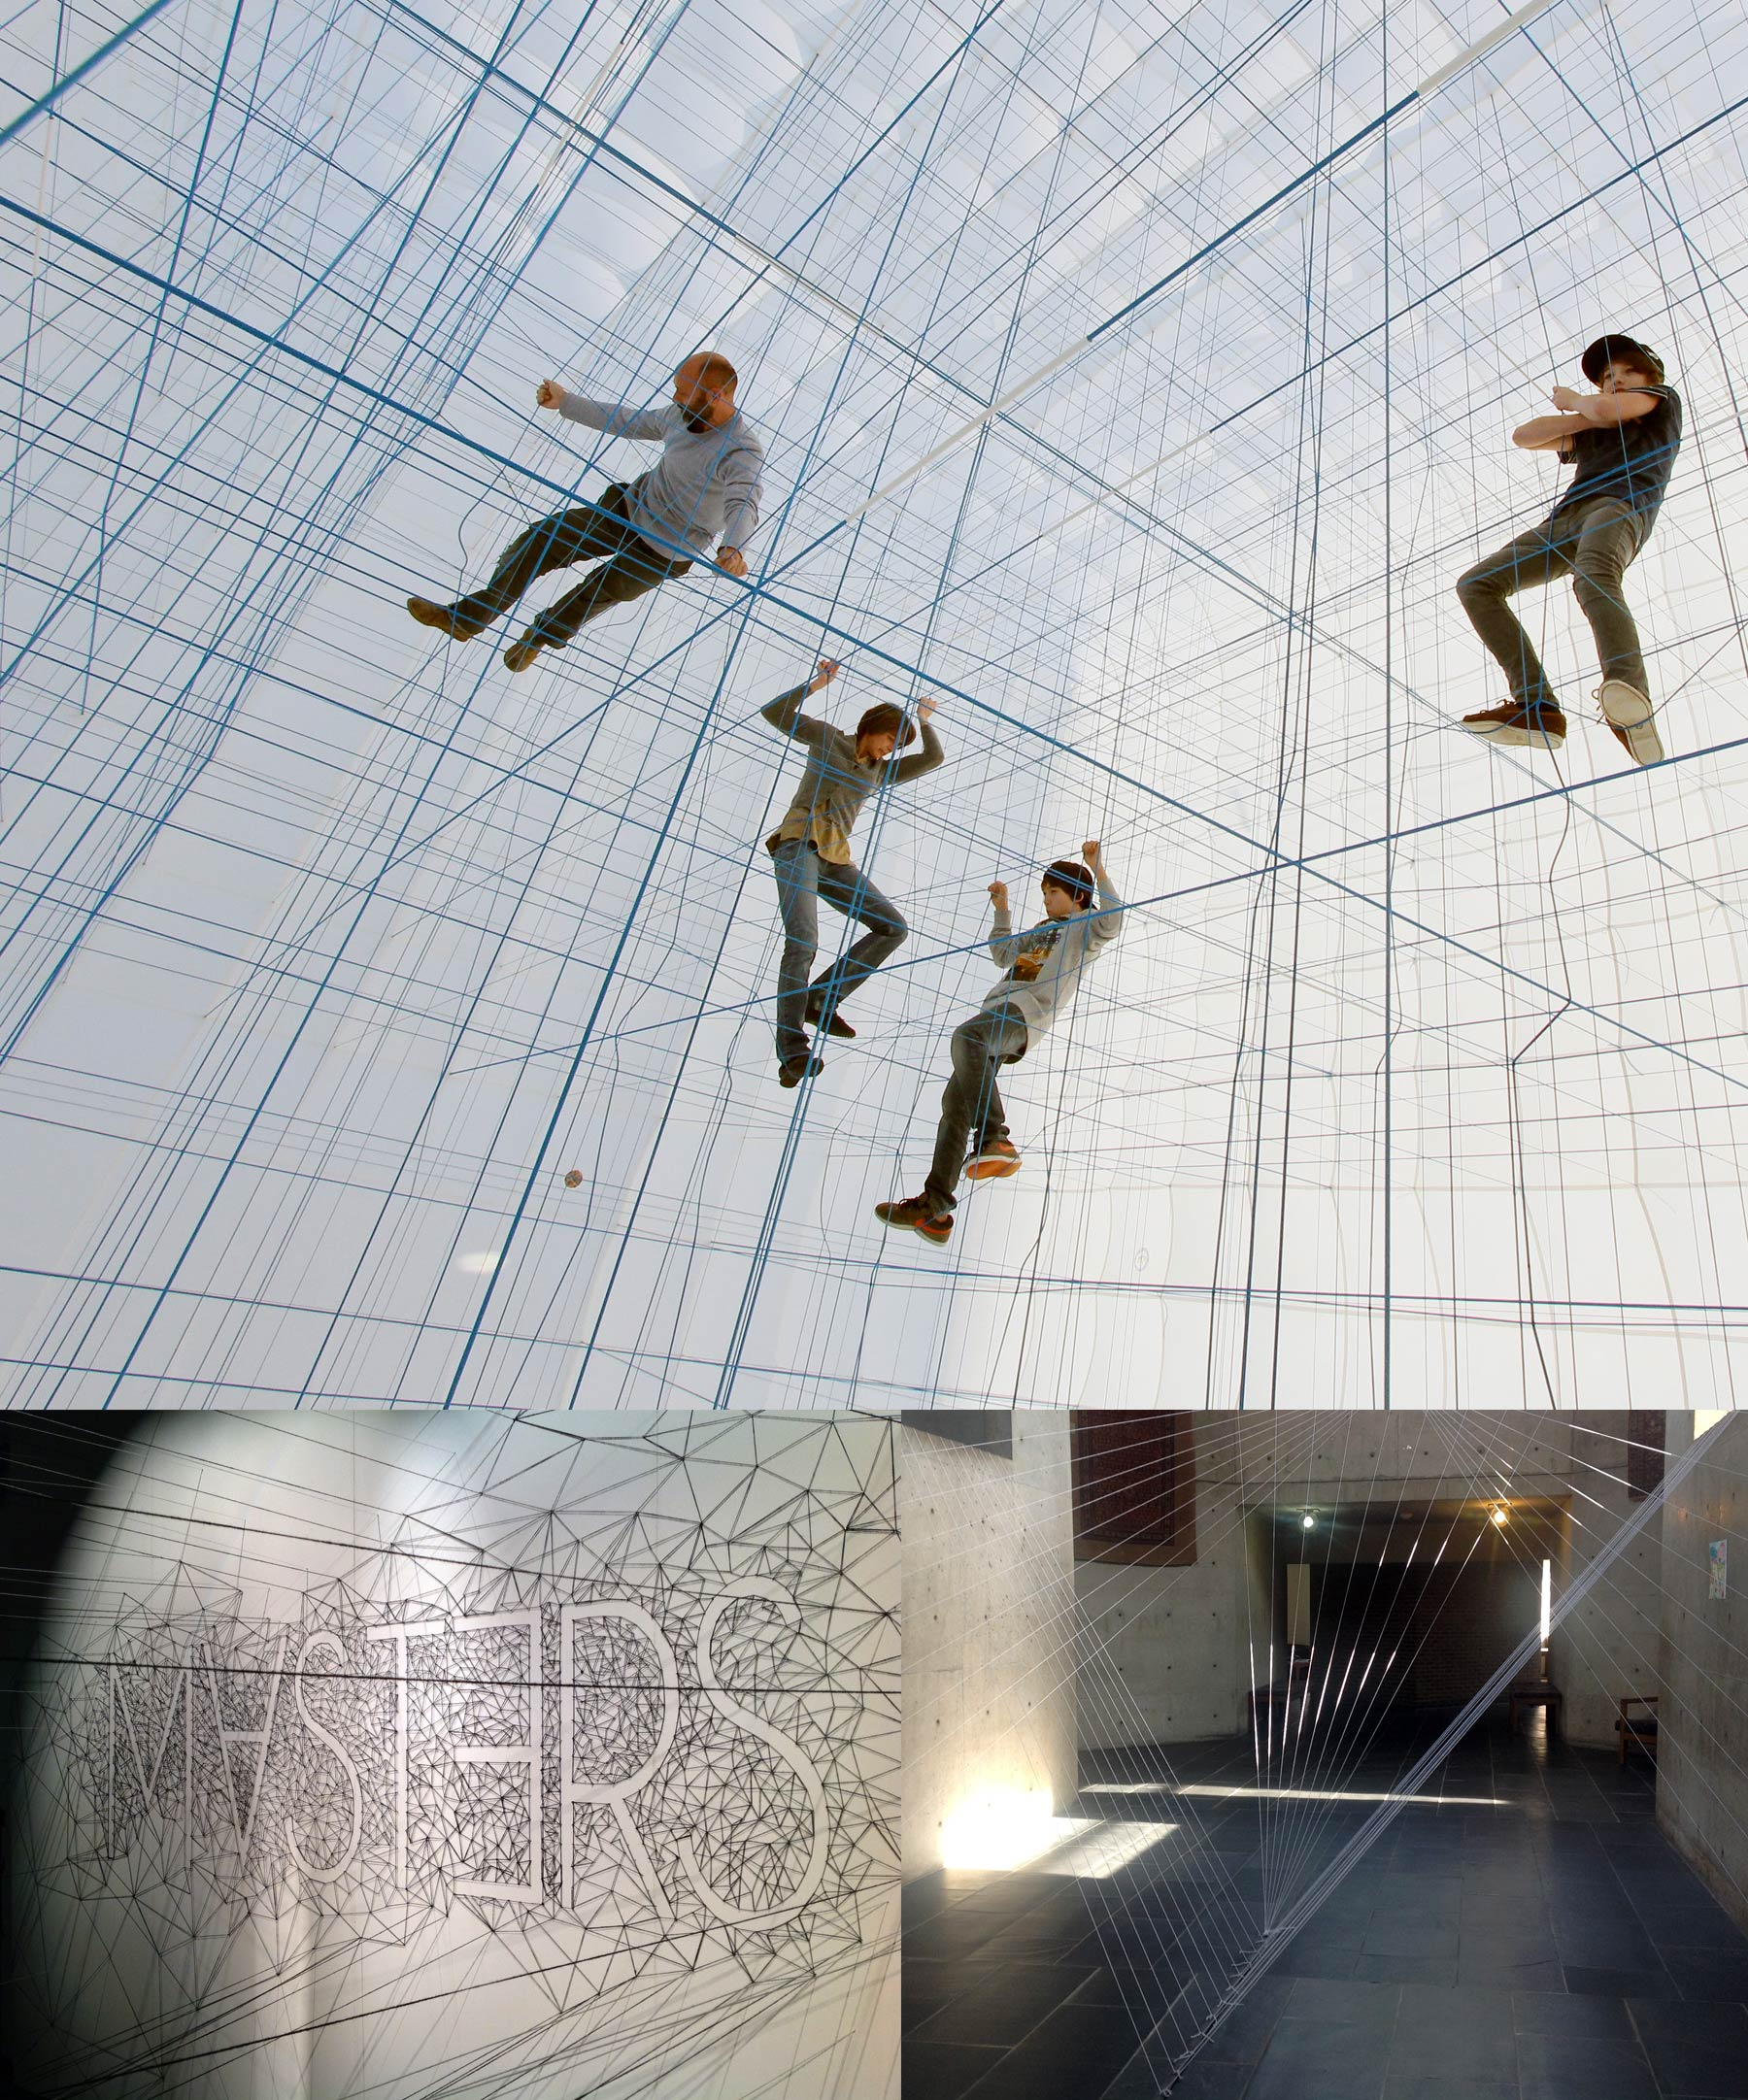 People climbing a structure made out of ropes, letters form out of a net of threads attached to the wall, threads through space.